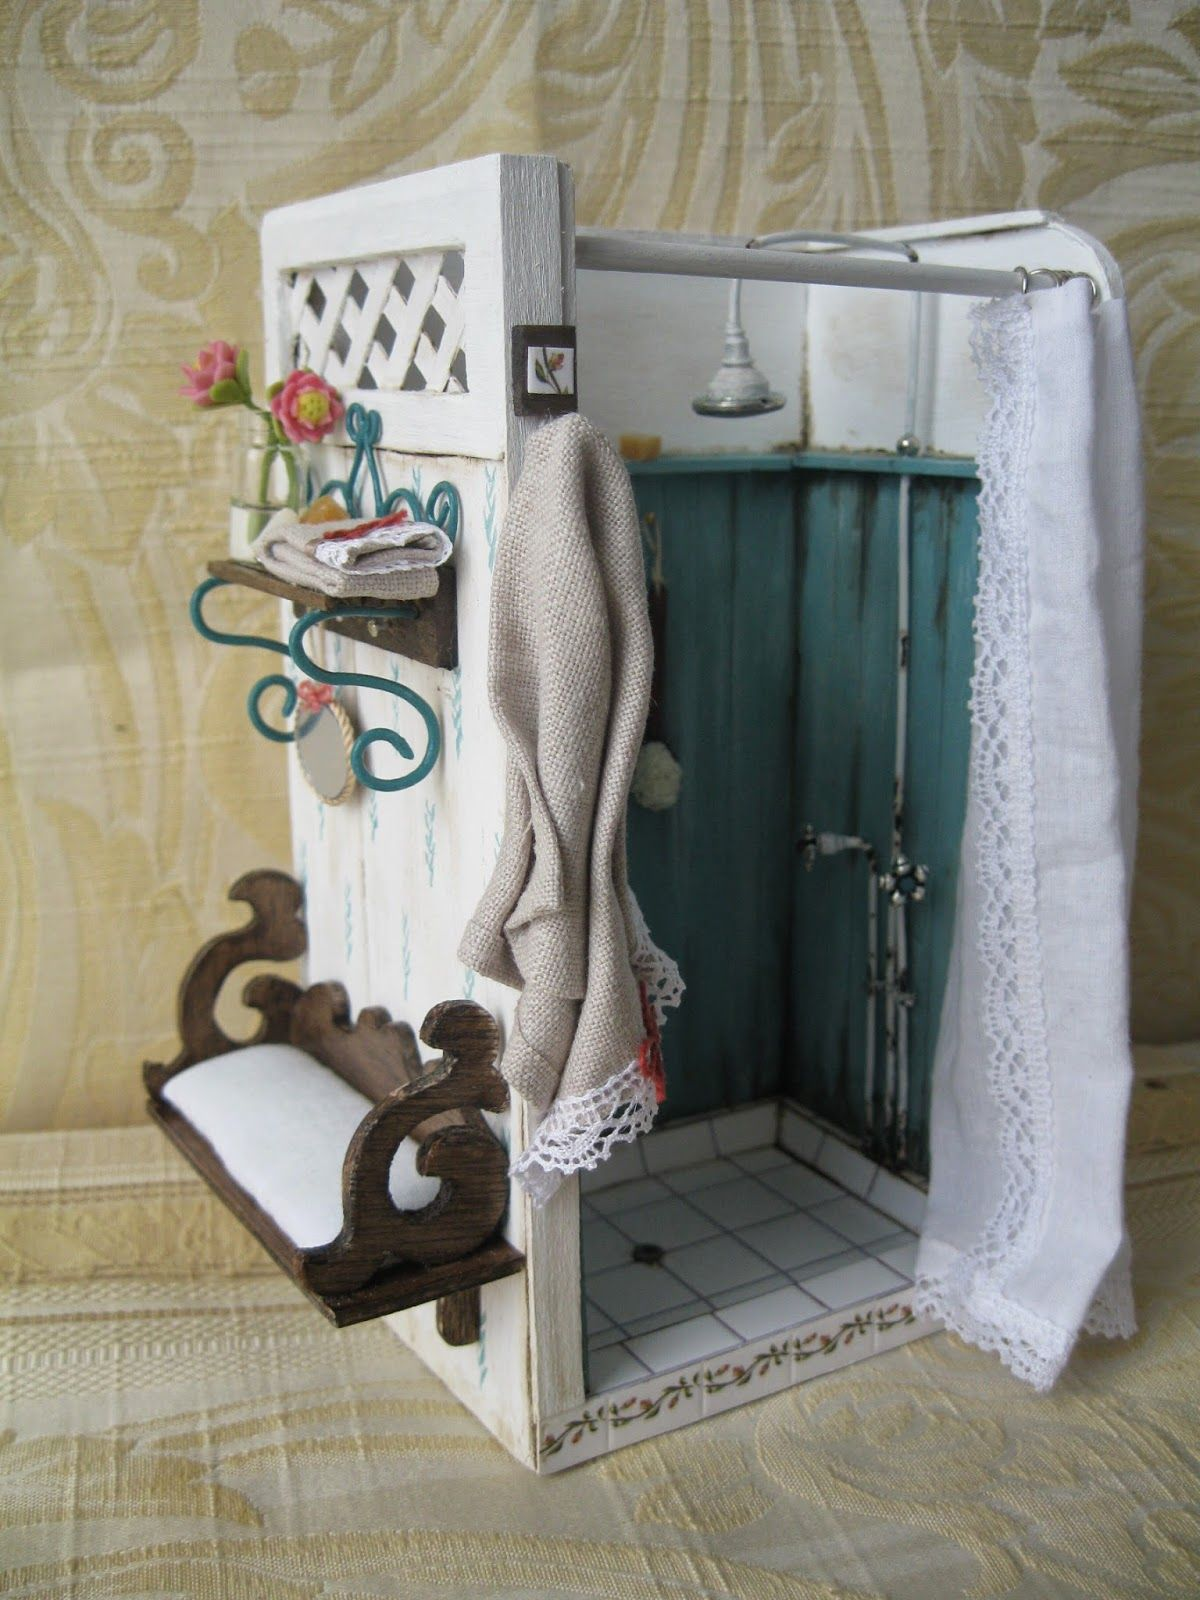 Mi Mundo En Miniatura Miniature Roomsminiature Dollhouse Furnituredollhouse Miniaturesdiy